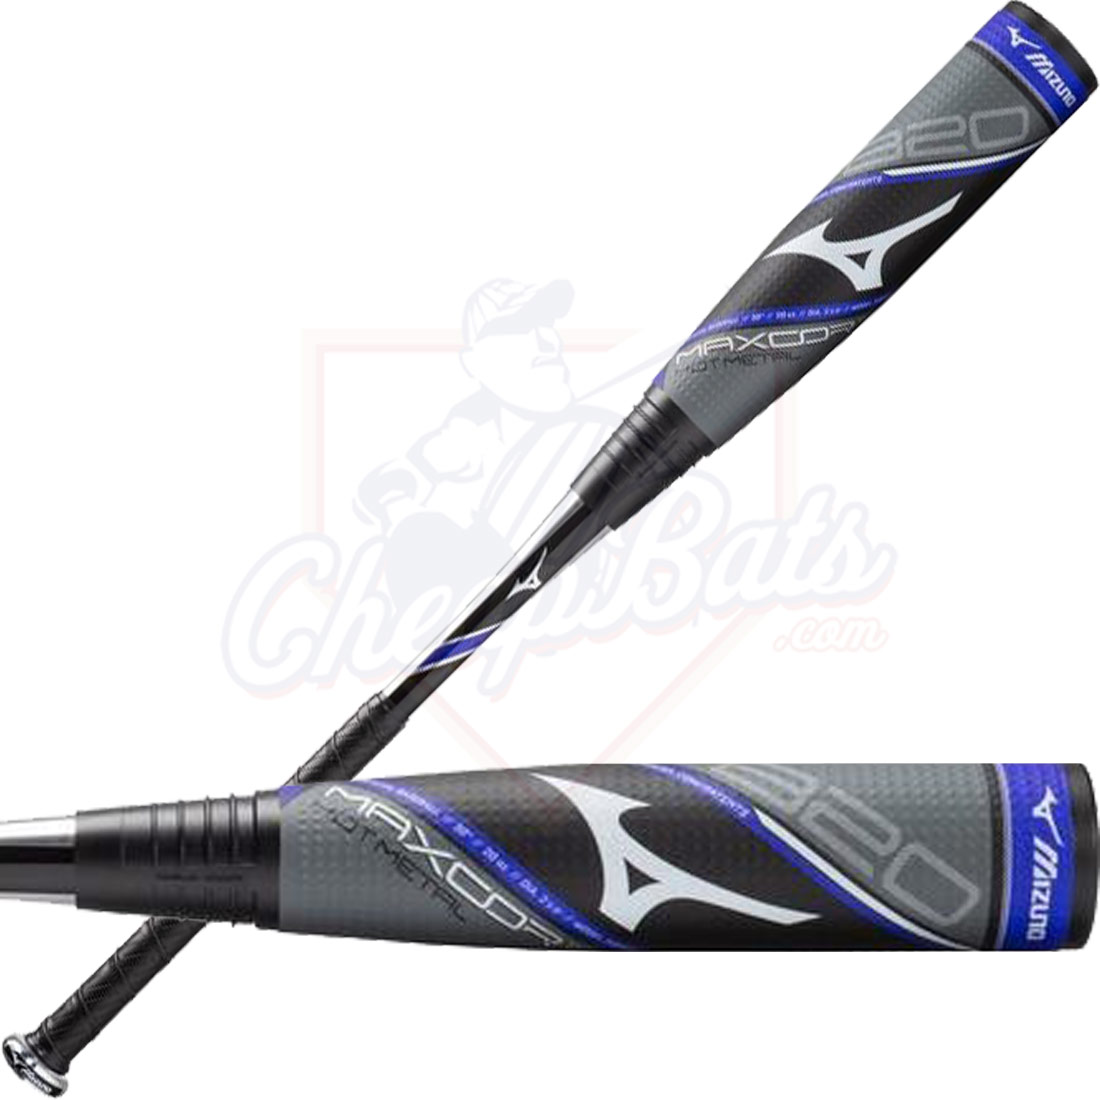 2020 Mizuno B20 Maxcor Hot Metal Youth USA Baseball Bat -10oz 340522